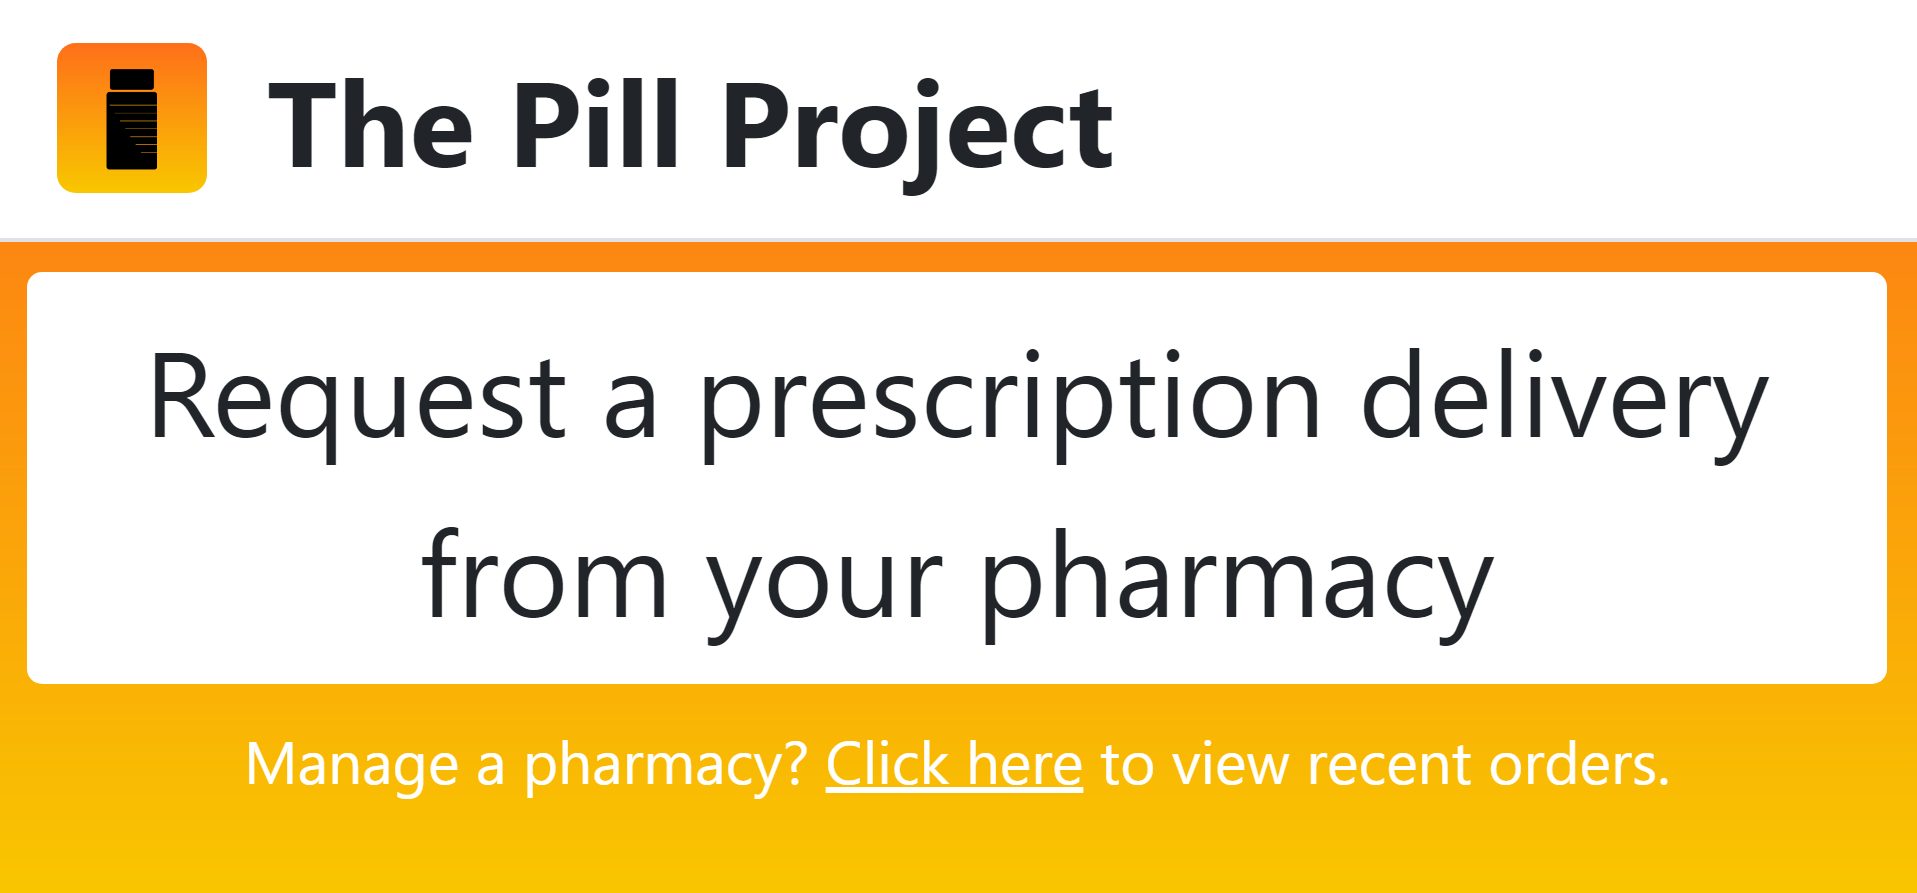 The Pill Project